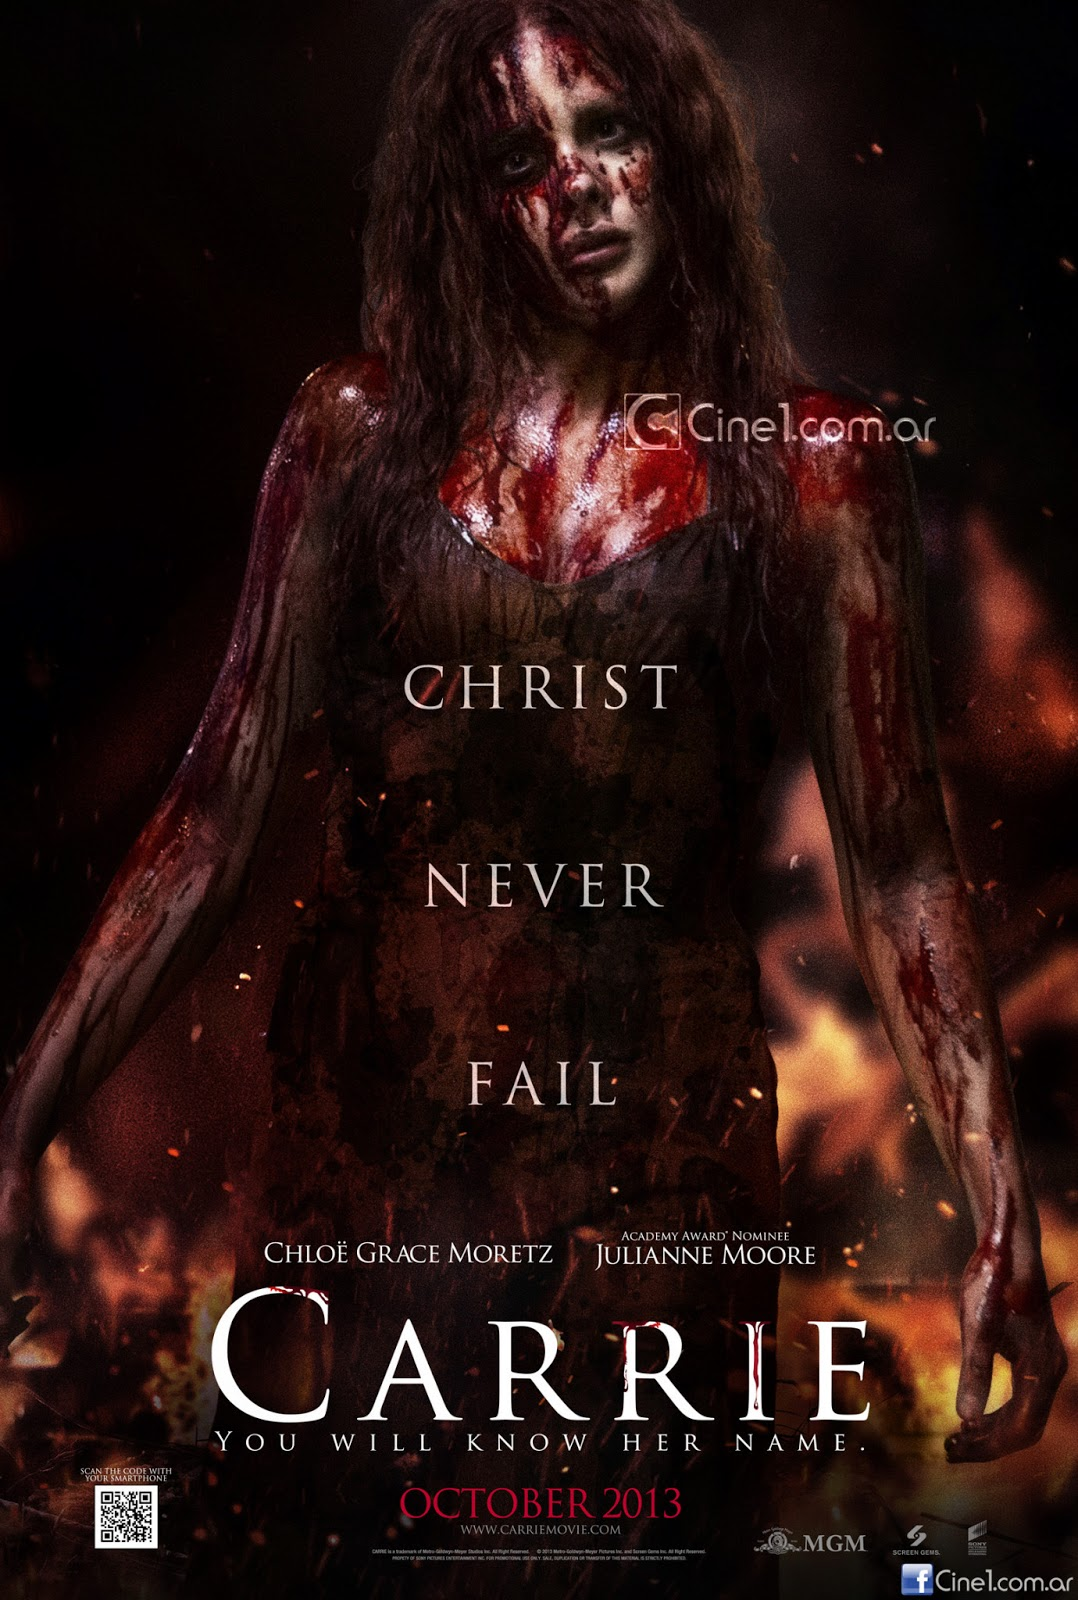 Super Horror Upcoming Hollywood Movie Carrie Trends Mane